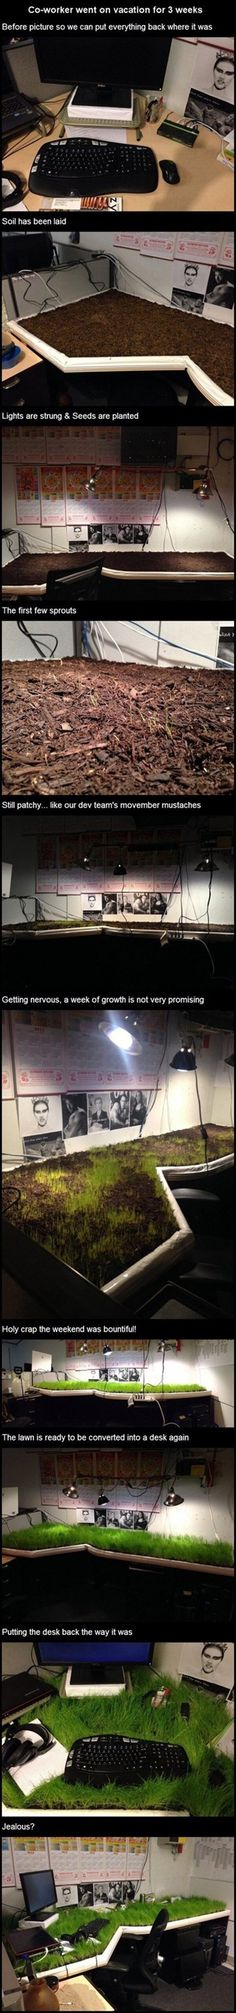 10 Pictures Showing the Ultimate Eco-Friendly Geek Prank